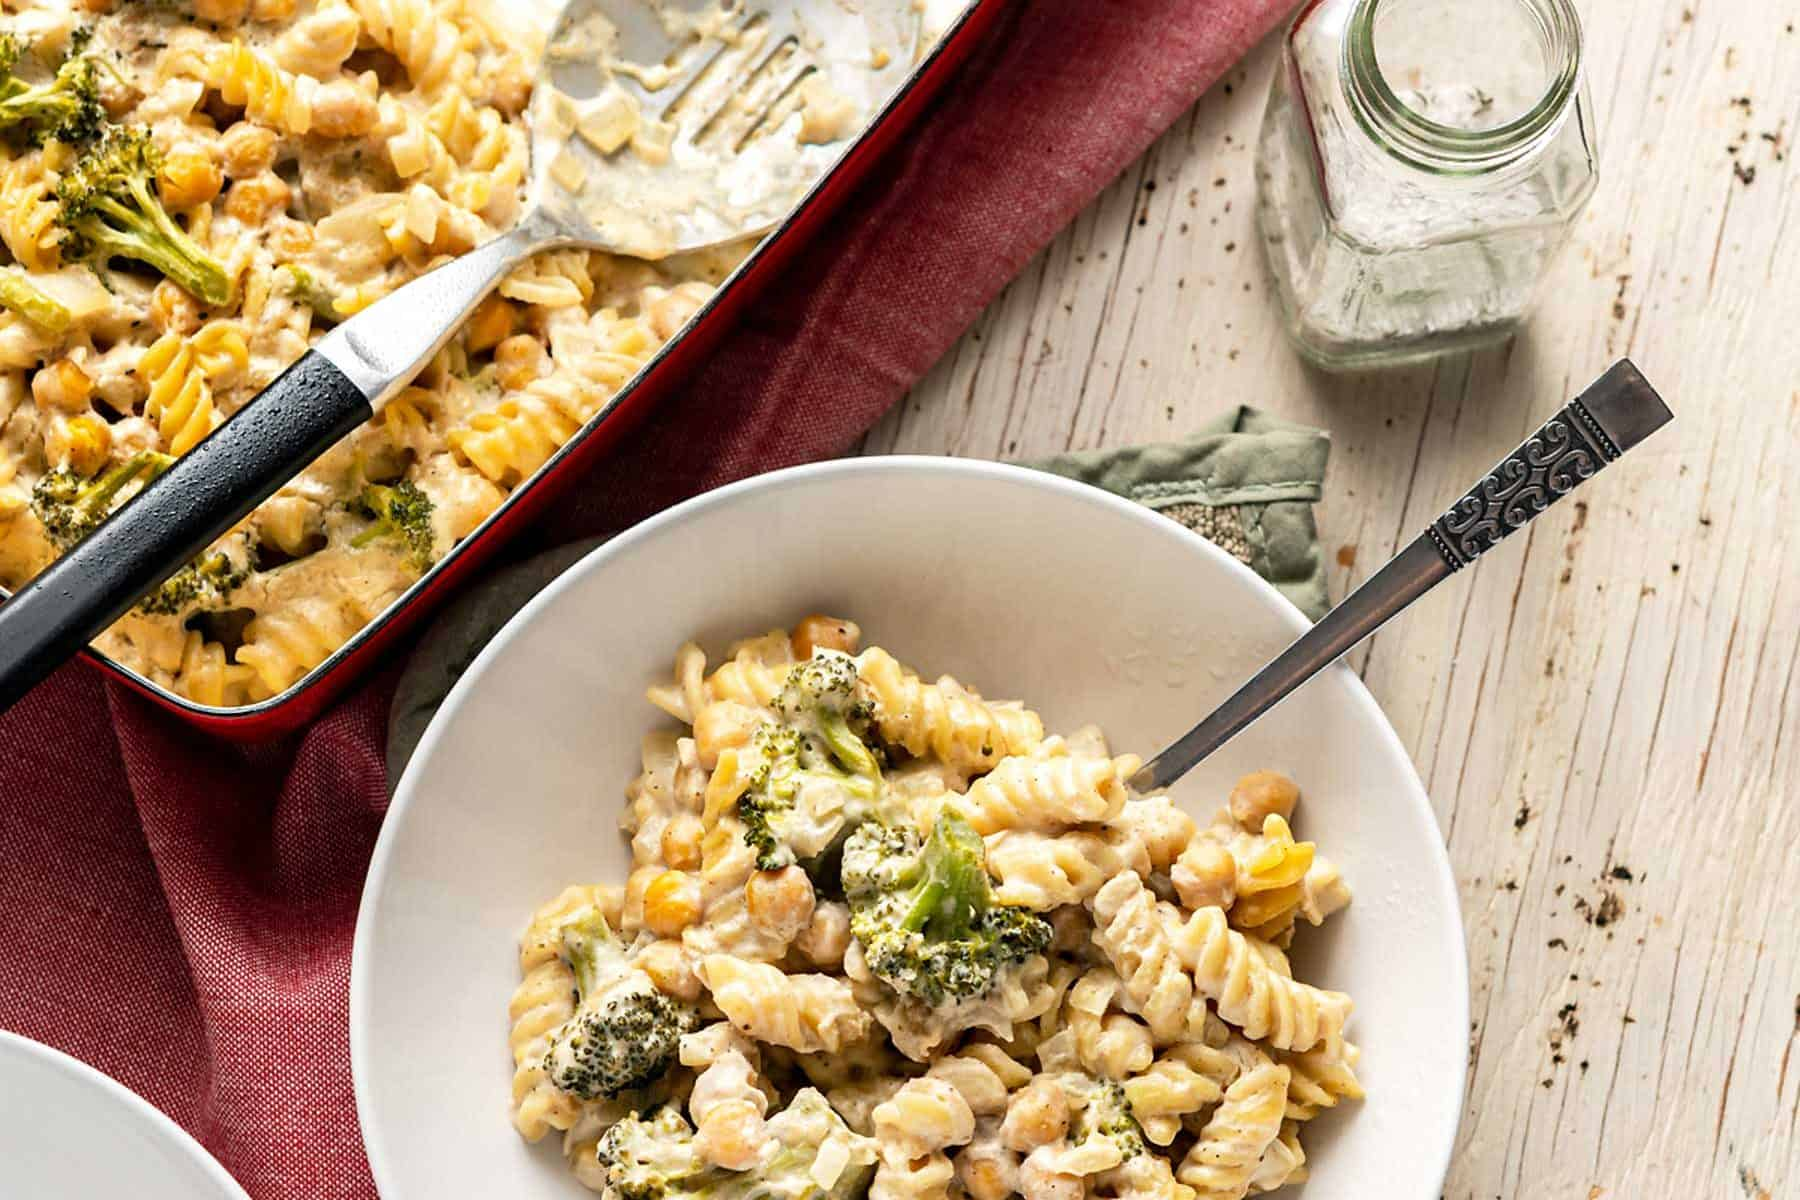 Bowl of No-Boil Broccoli Pasta Bake next to a casserole dish